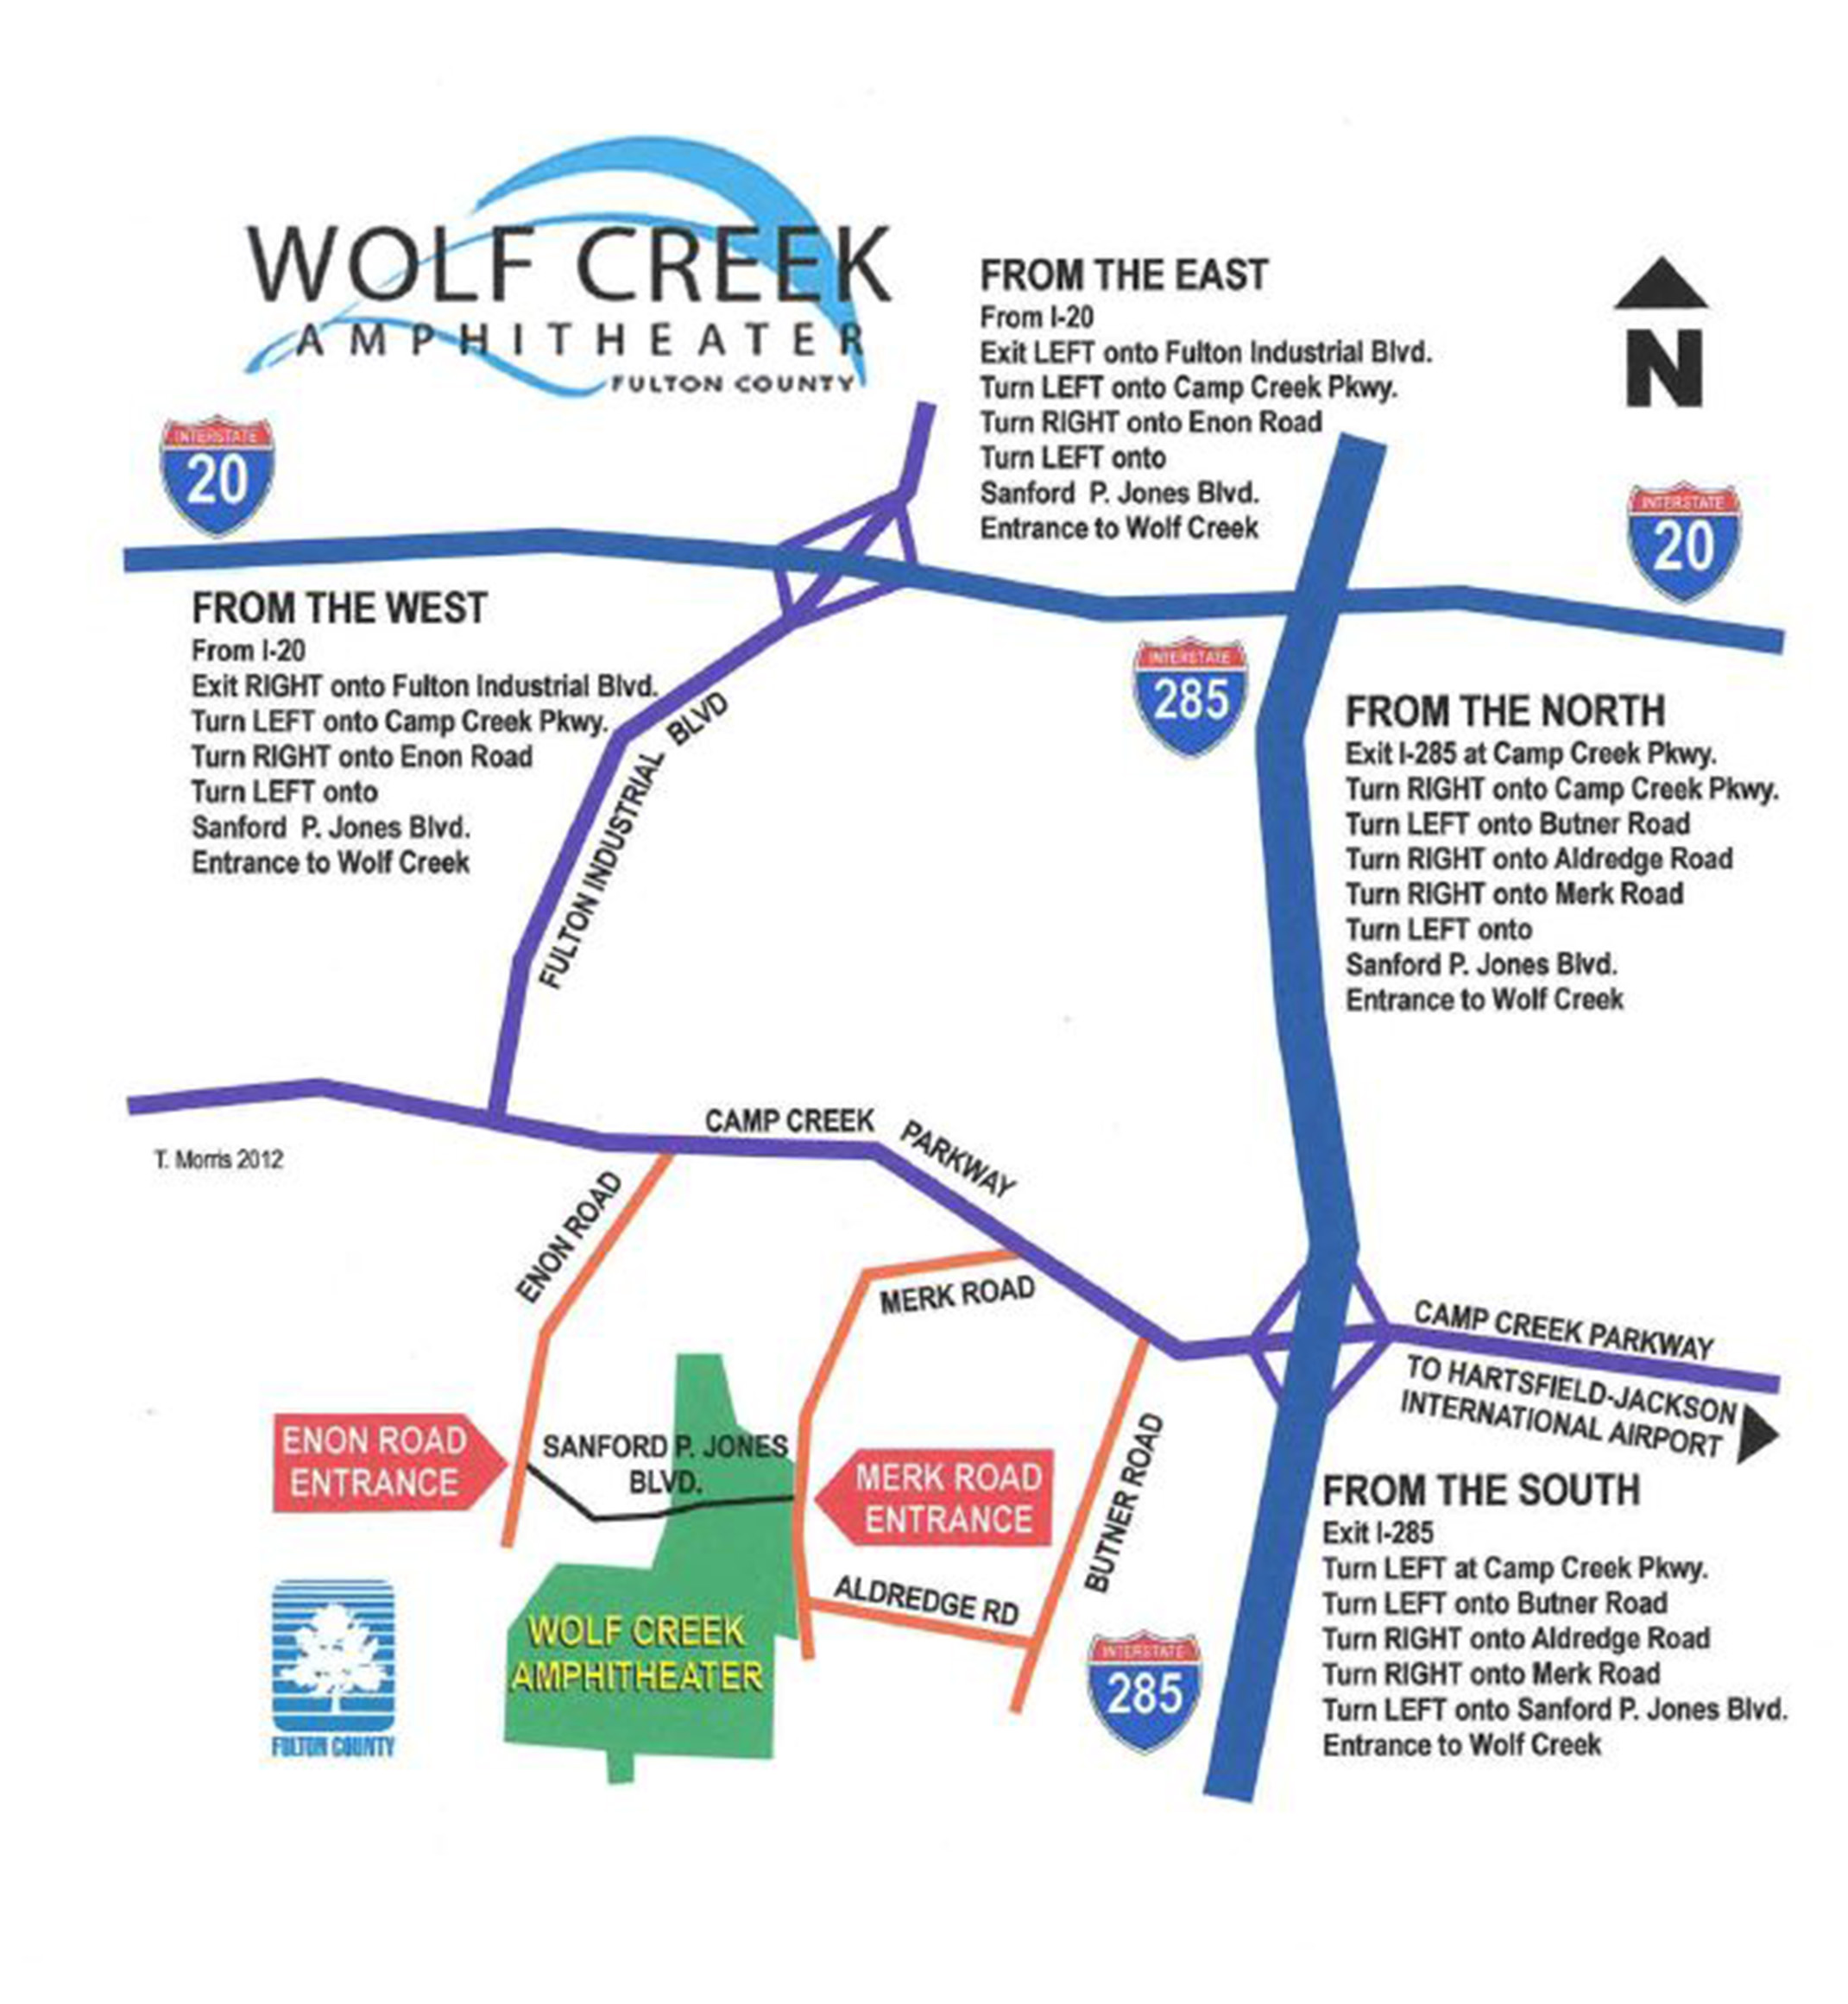 Map Directions Wolf Creek Amphitheater